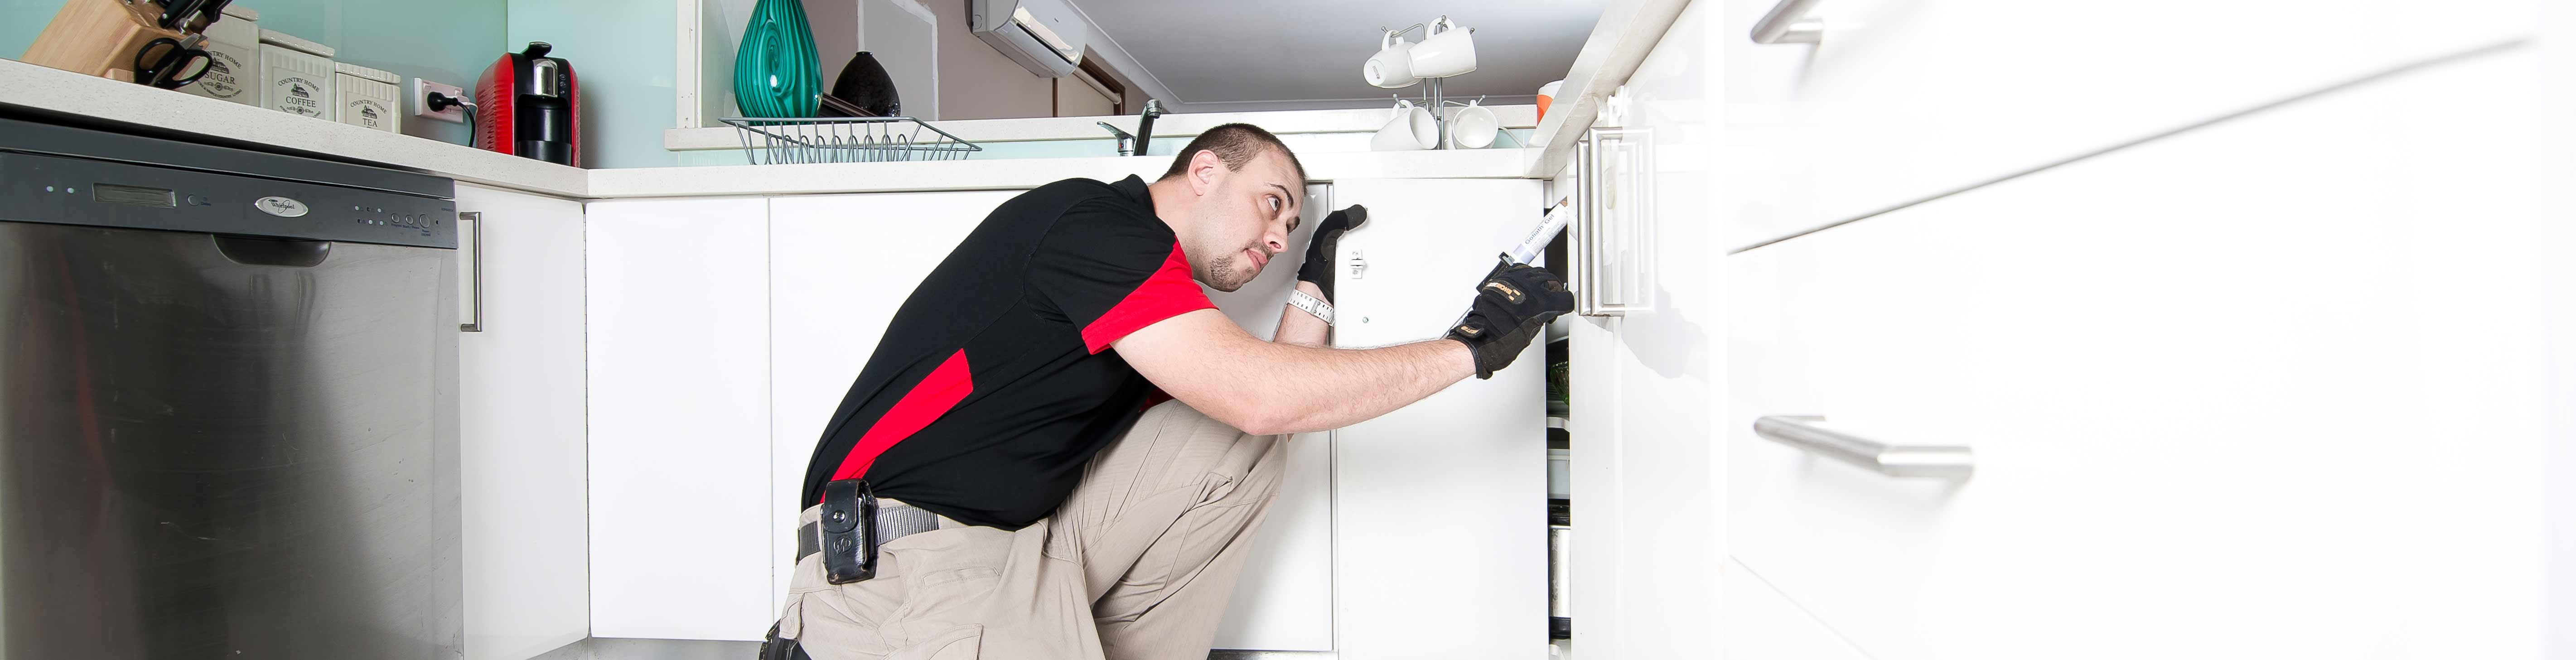 residential pest control service header image